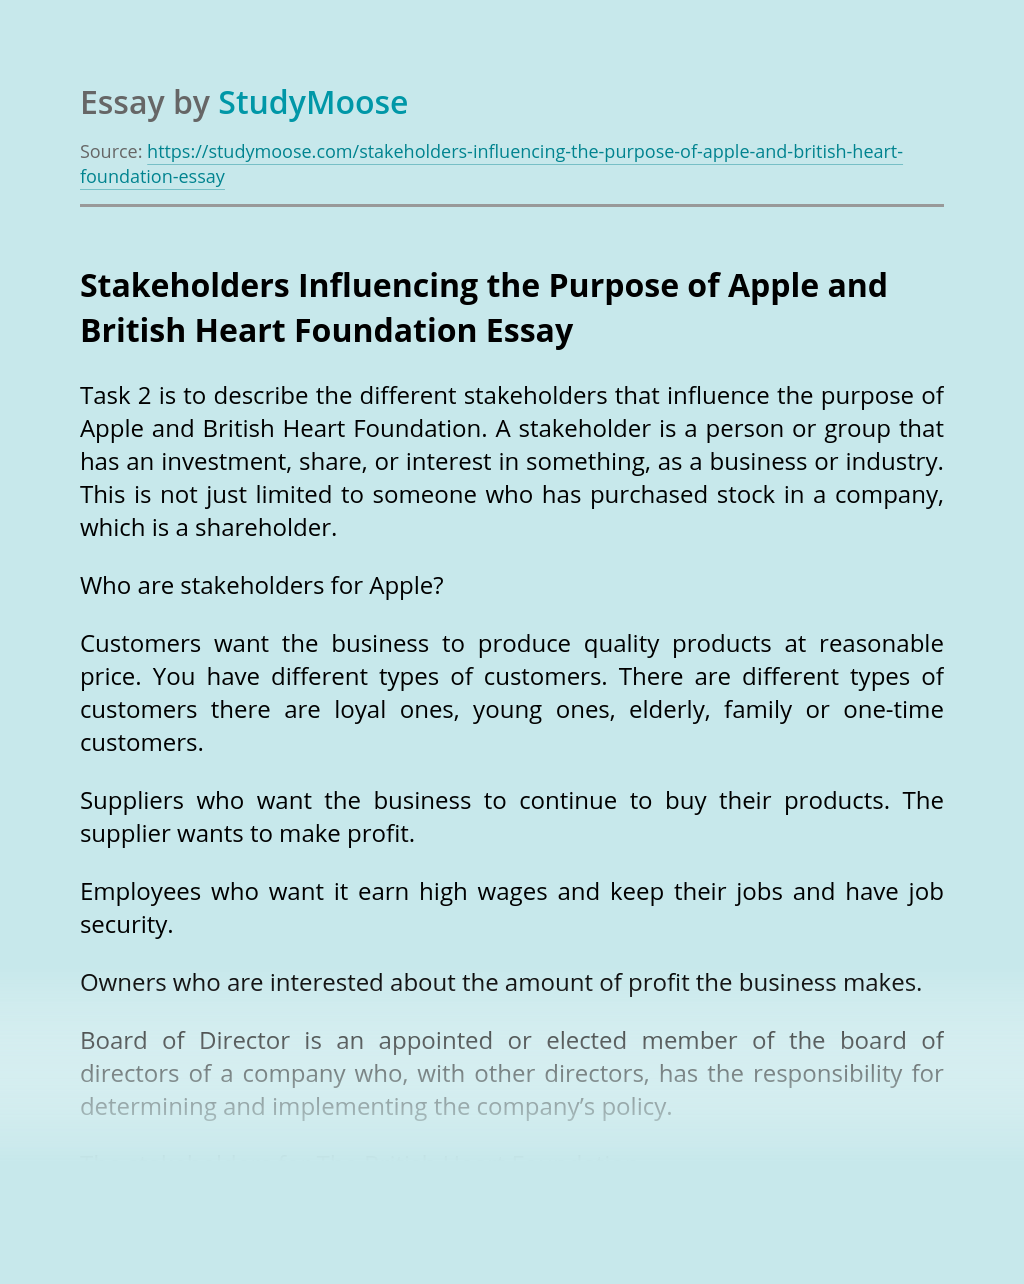 Stakeholders Influencing the Purpose of Apple and British Heart Foundation